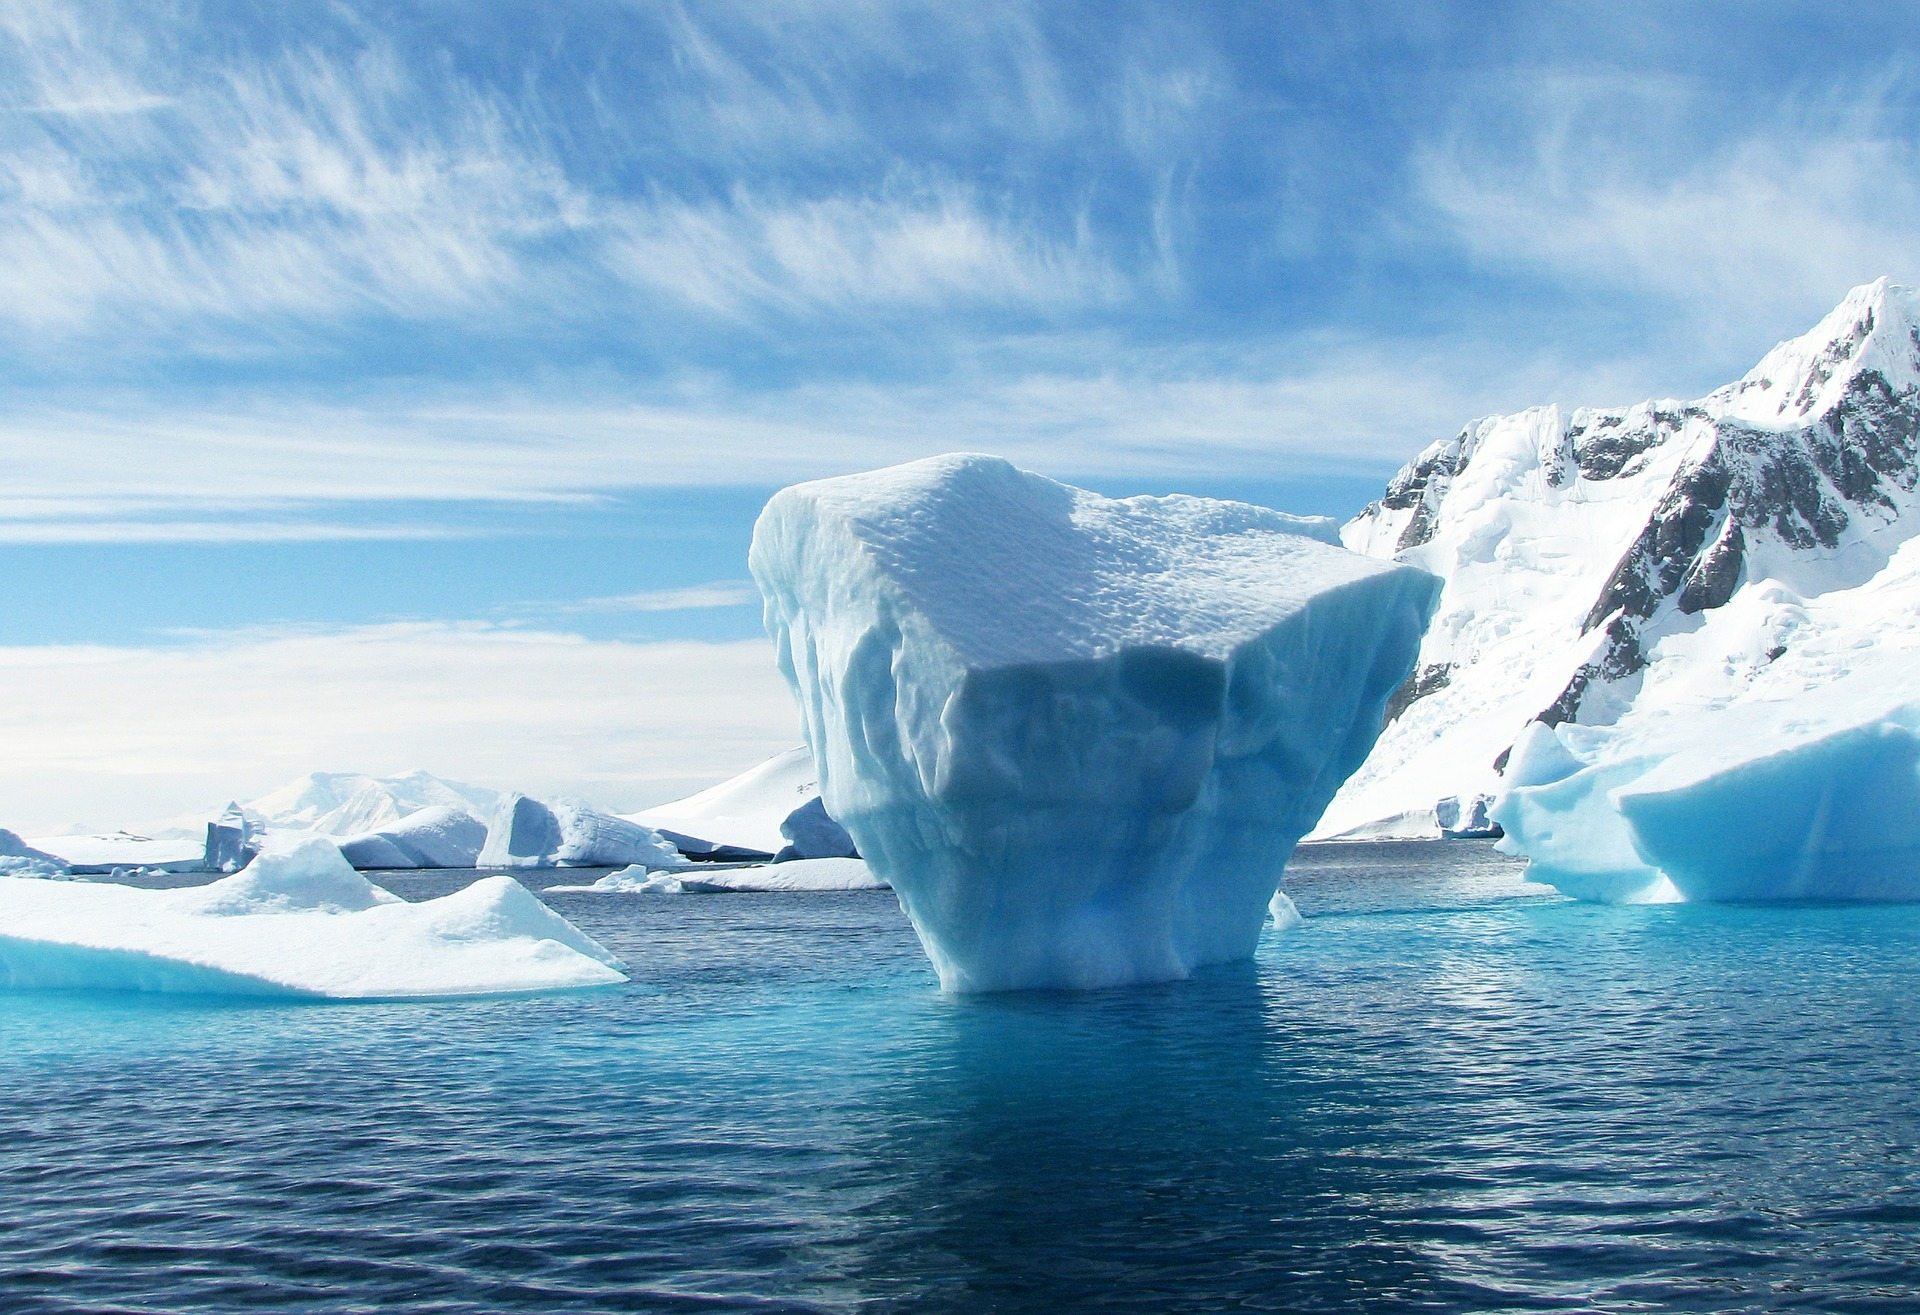 The Art of Icebergs